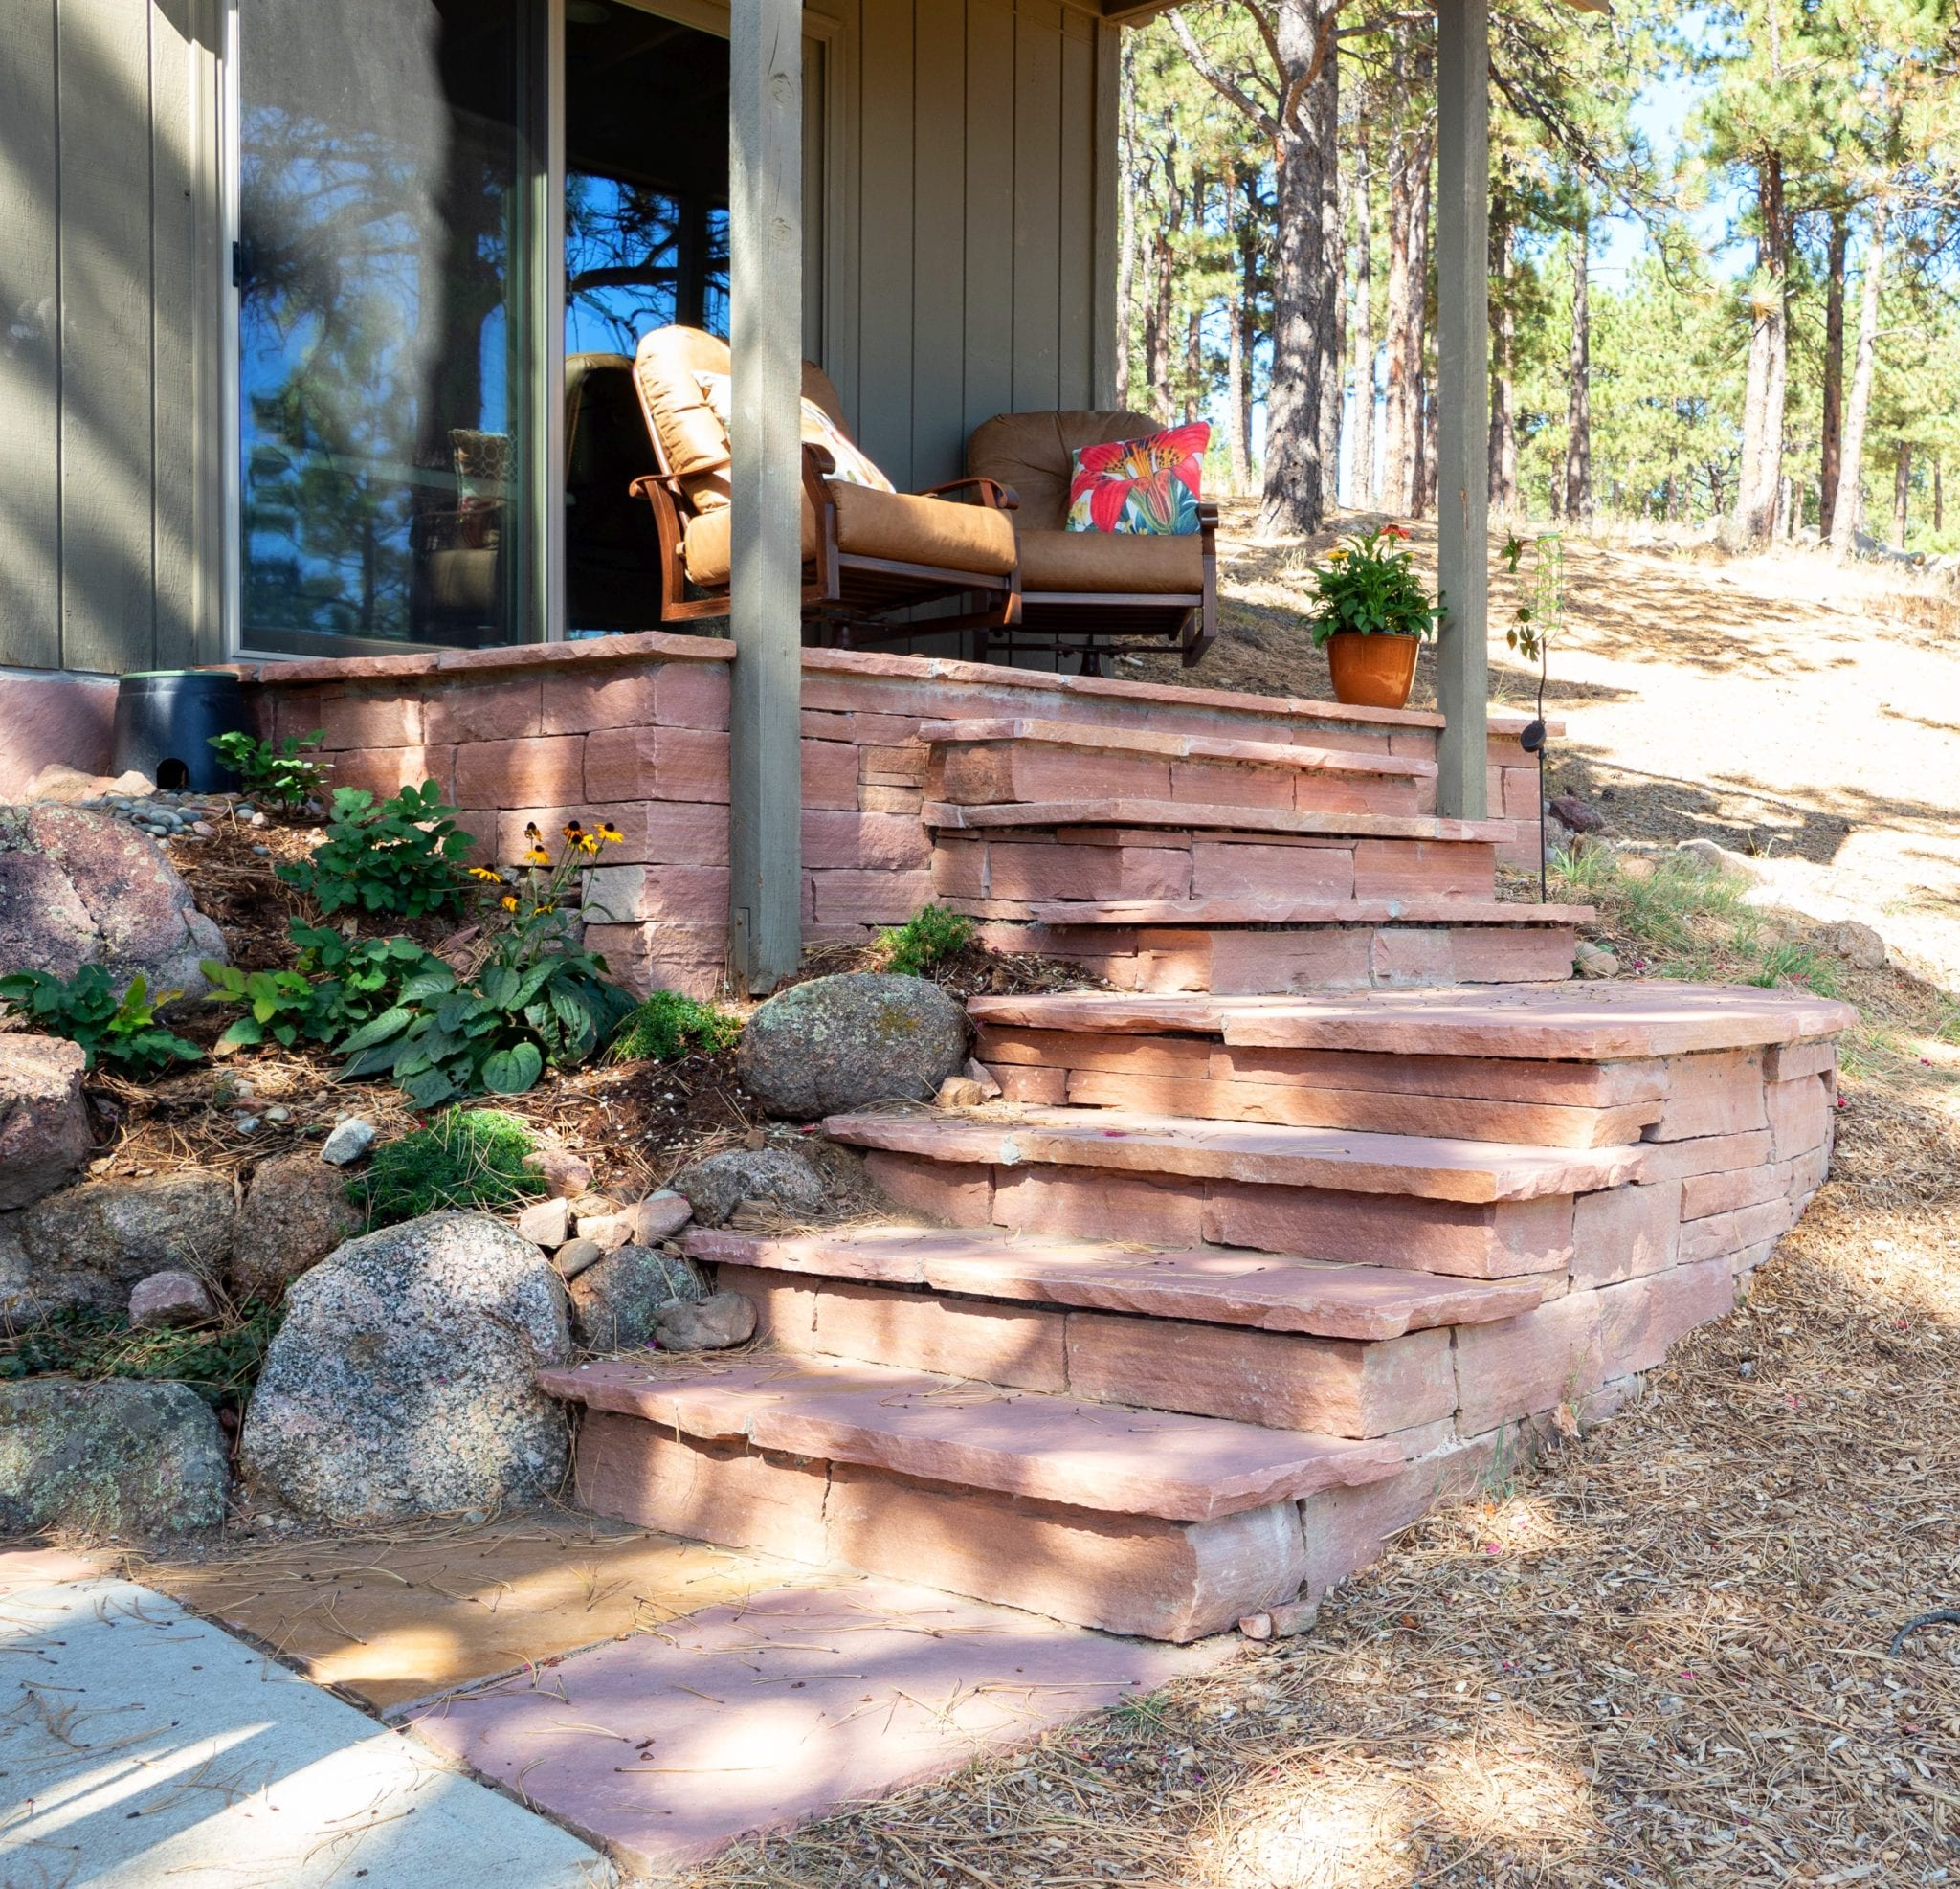 Stair Design Budget And Important Things To Consider: Inspiration For Your Landscaping Paths & Stairs In Boulder, CO